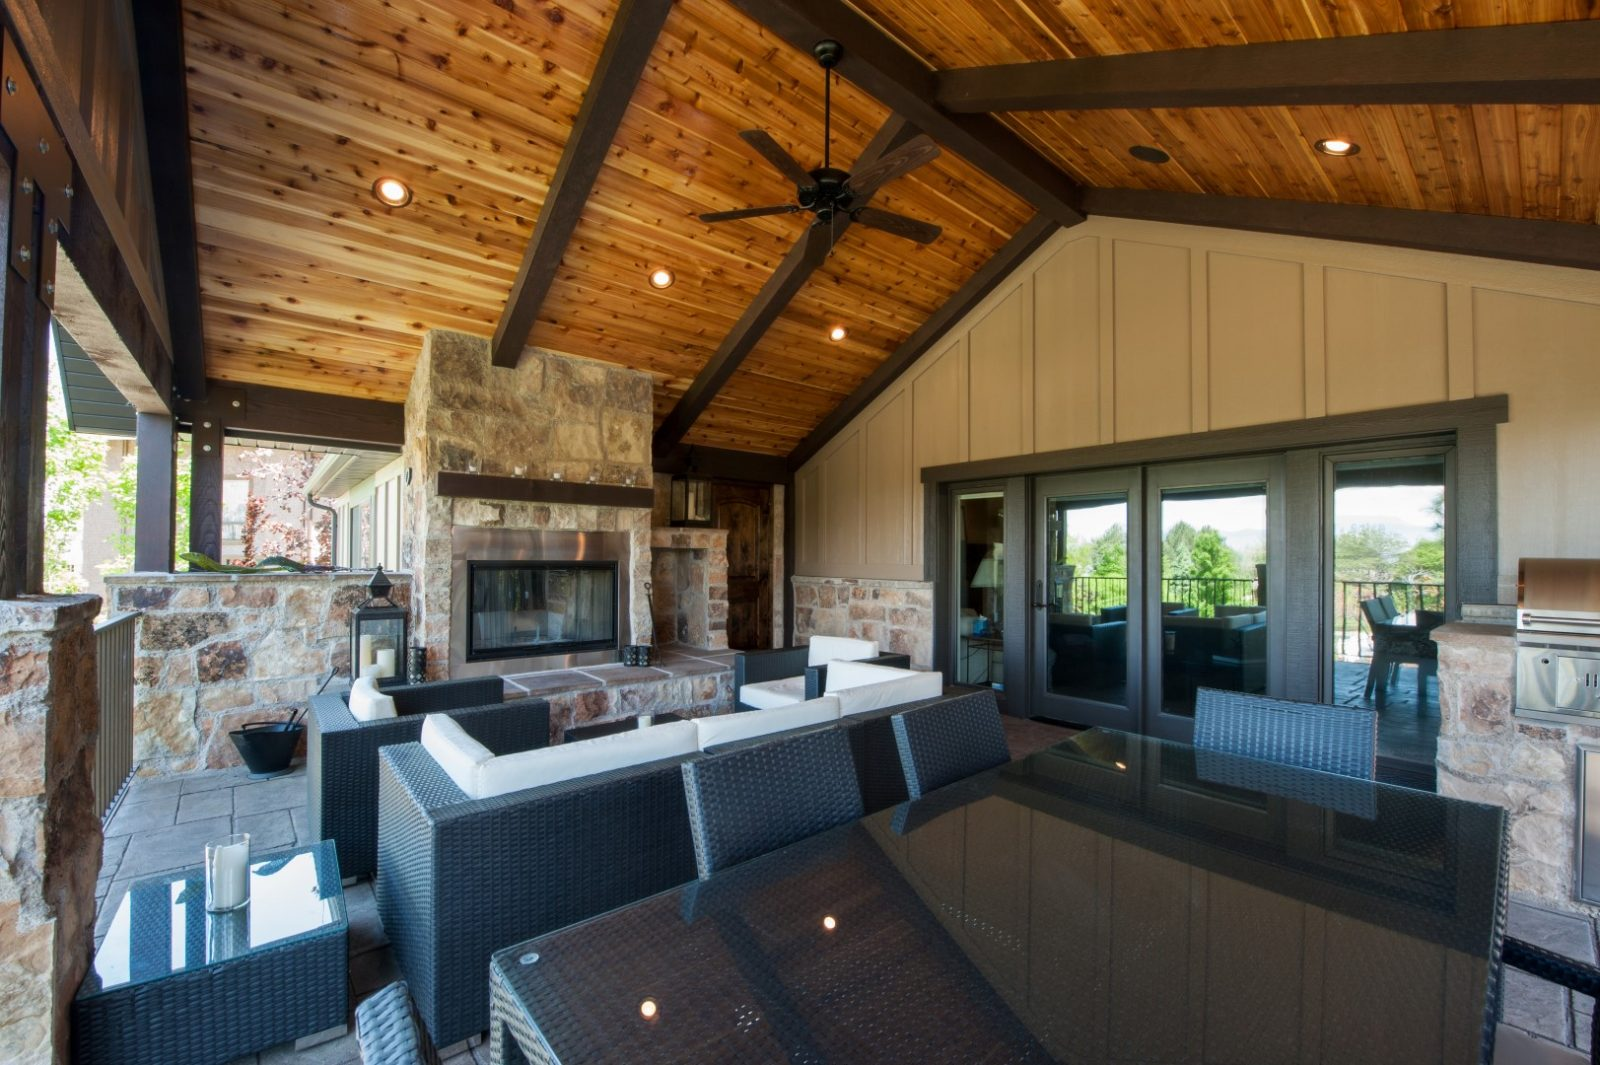 After_Exterior Design_Deck Addition_Refined Rustic Style (Large) | Renovation Design Group